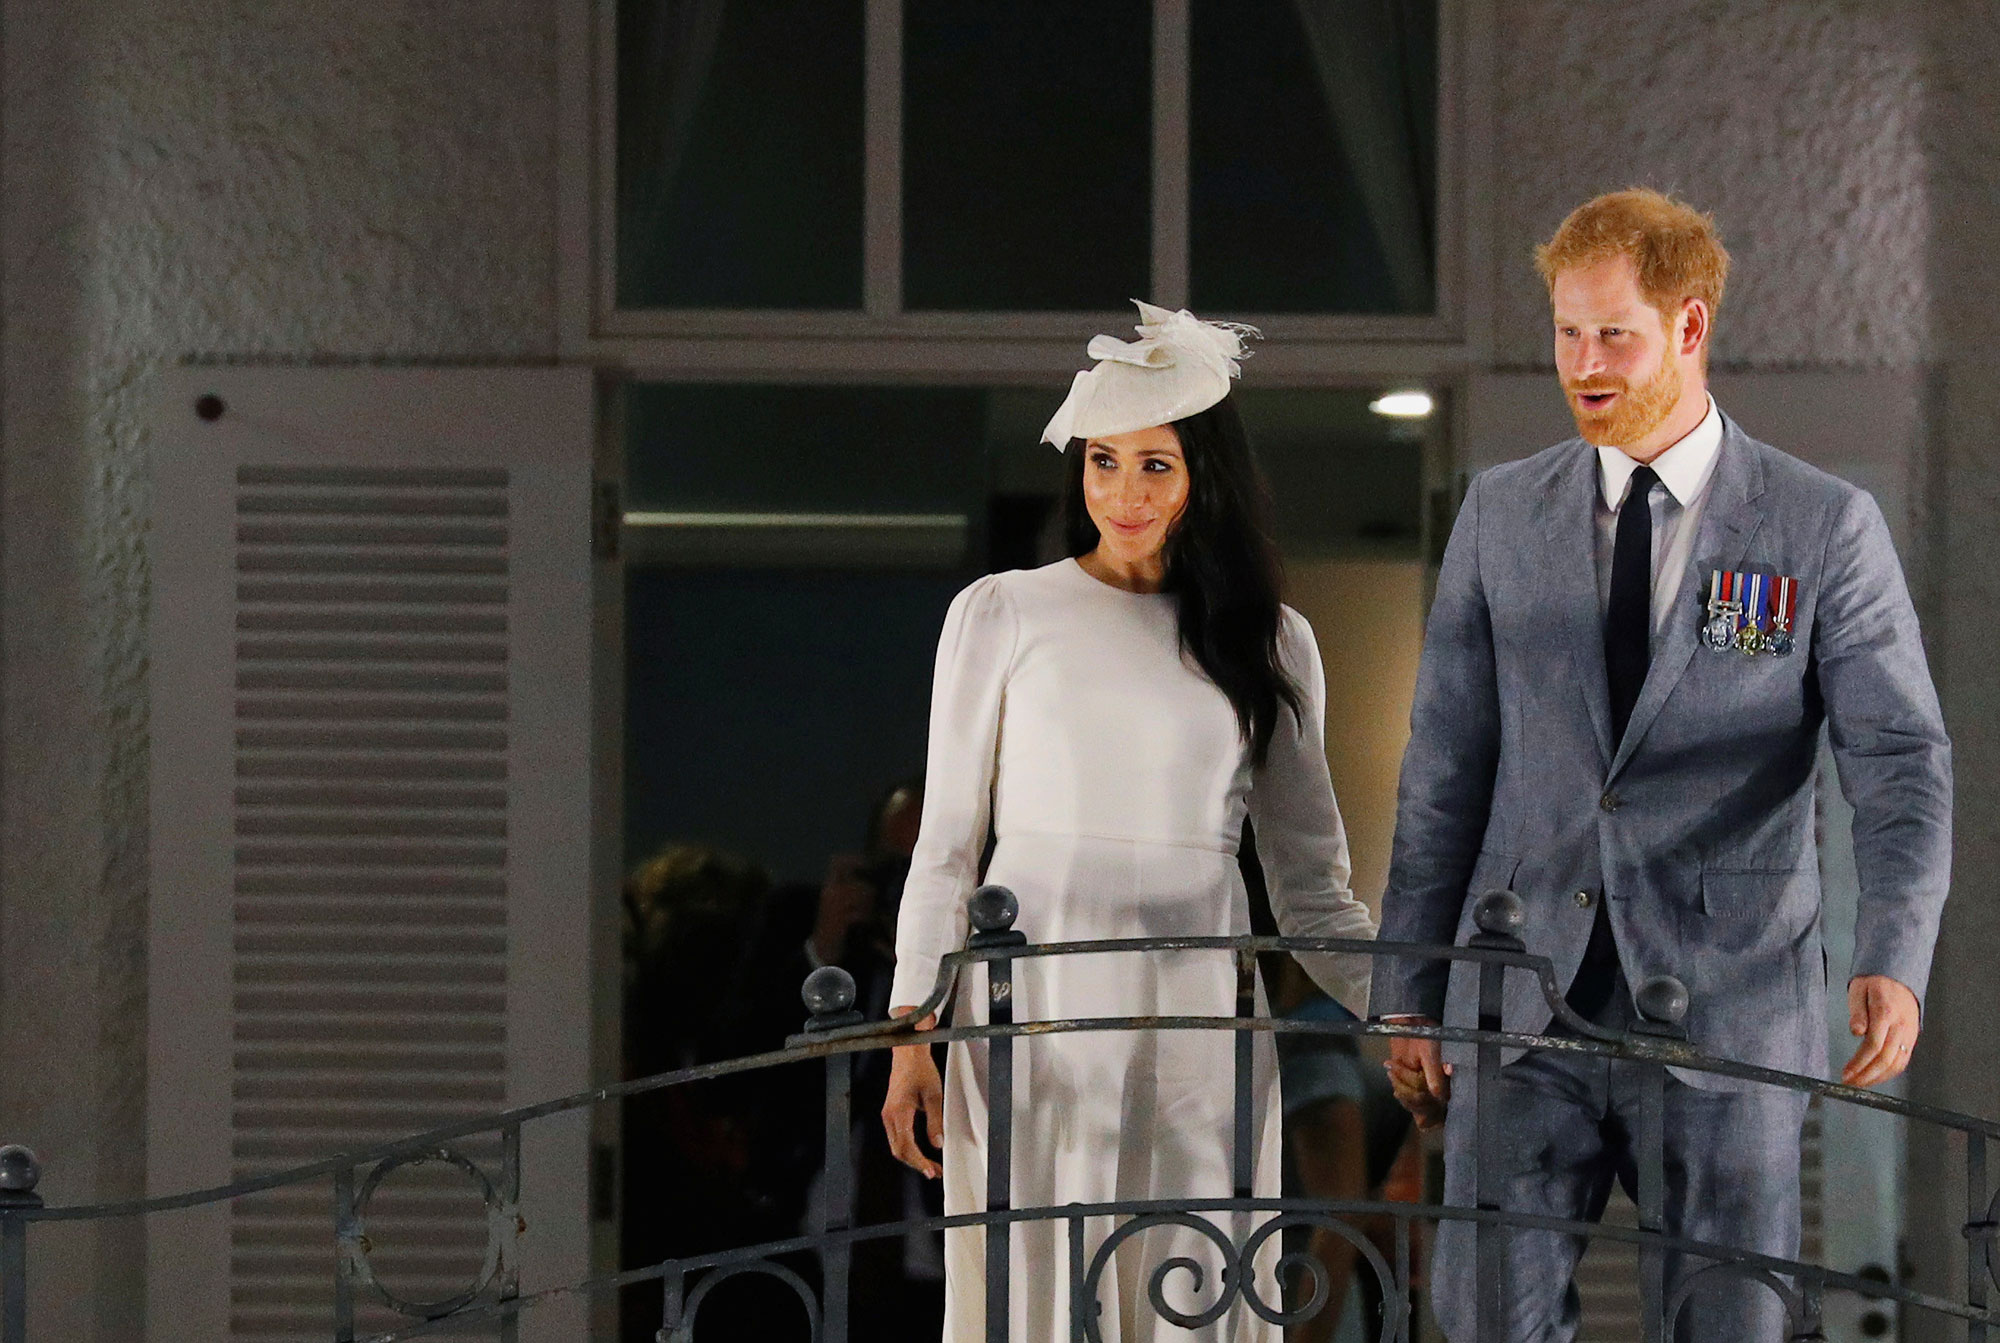 "<div class=""meta image-caption""><div class=""origin-logo origin-image none""><span>none</span></div><span class=""caption-text"">Britain's Prince Harry and Meghan, Duchess of Sussex wave from the balcony of the Grand Pacific Hotel in Suva, Fiji, Tuesday, Oct. 23, 2018. (Phil Noble/Pool Photo via AP)</span></div>"